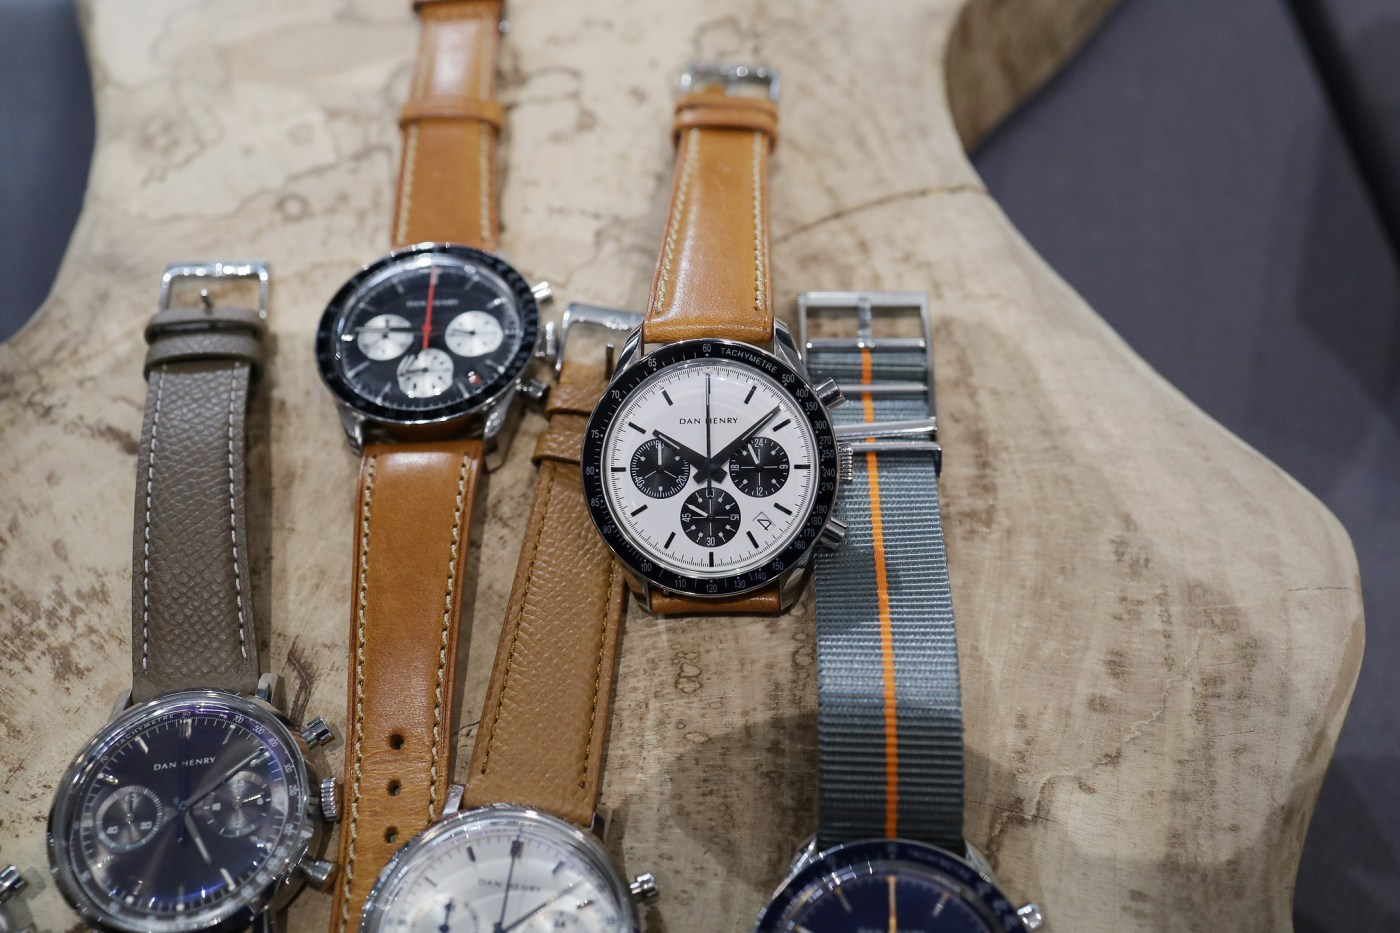 Dan Henry chronographs at Windup